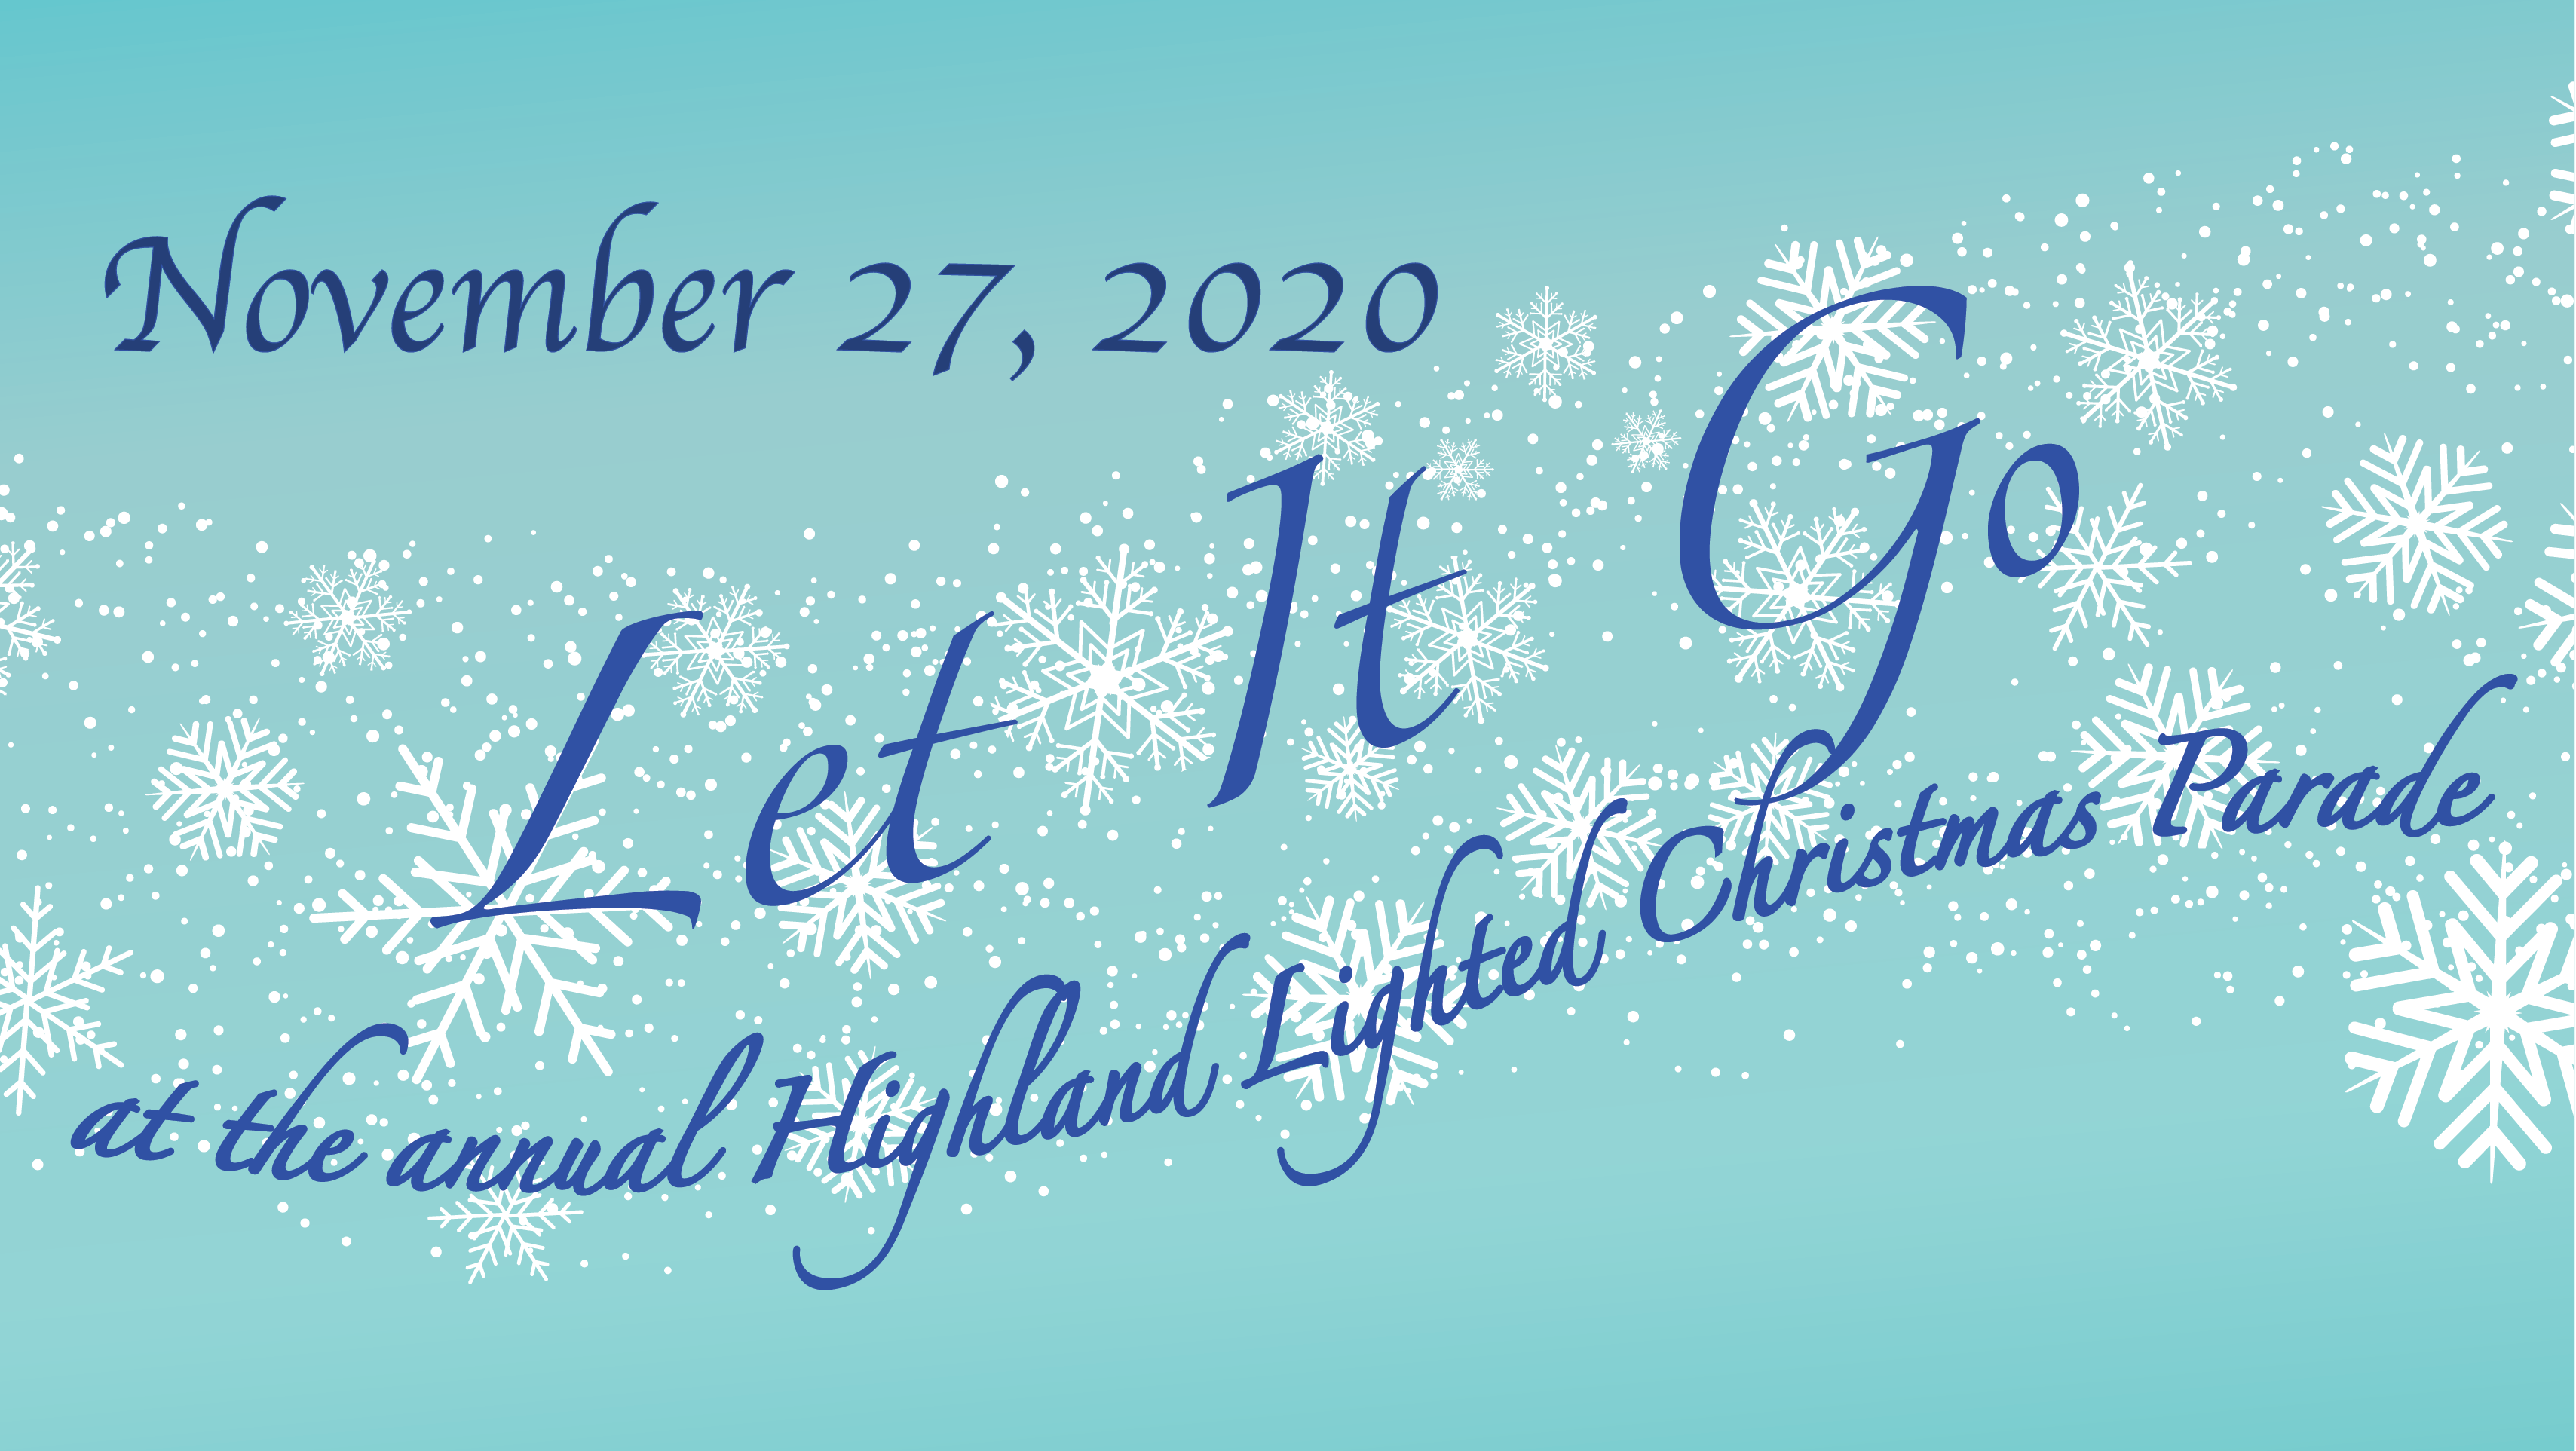 Highlands Christmas Parade 2020 Calendar of Events   Highland Chamber of Commerce.